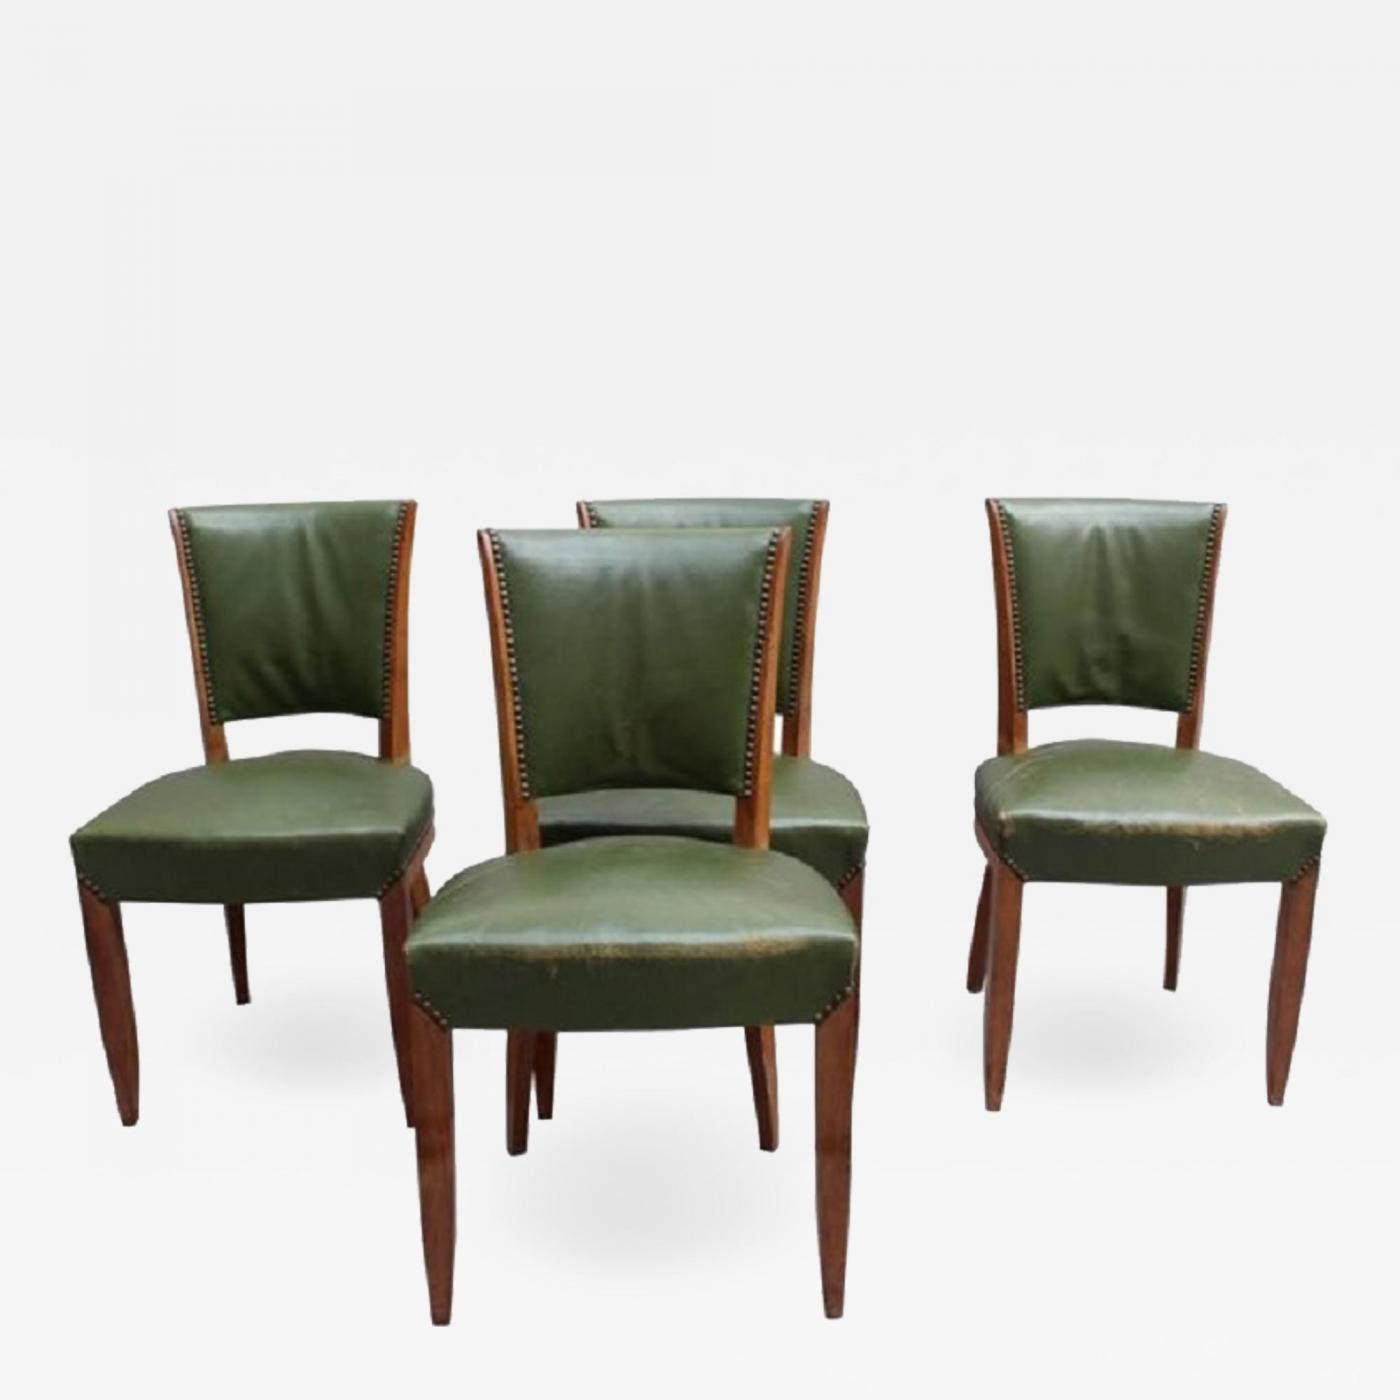 Listings / Furniture / Seating / Side Chairs